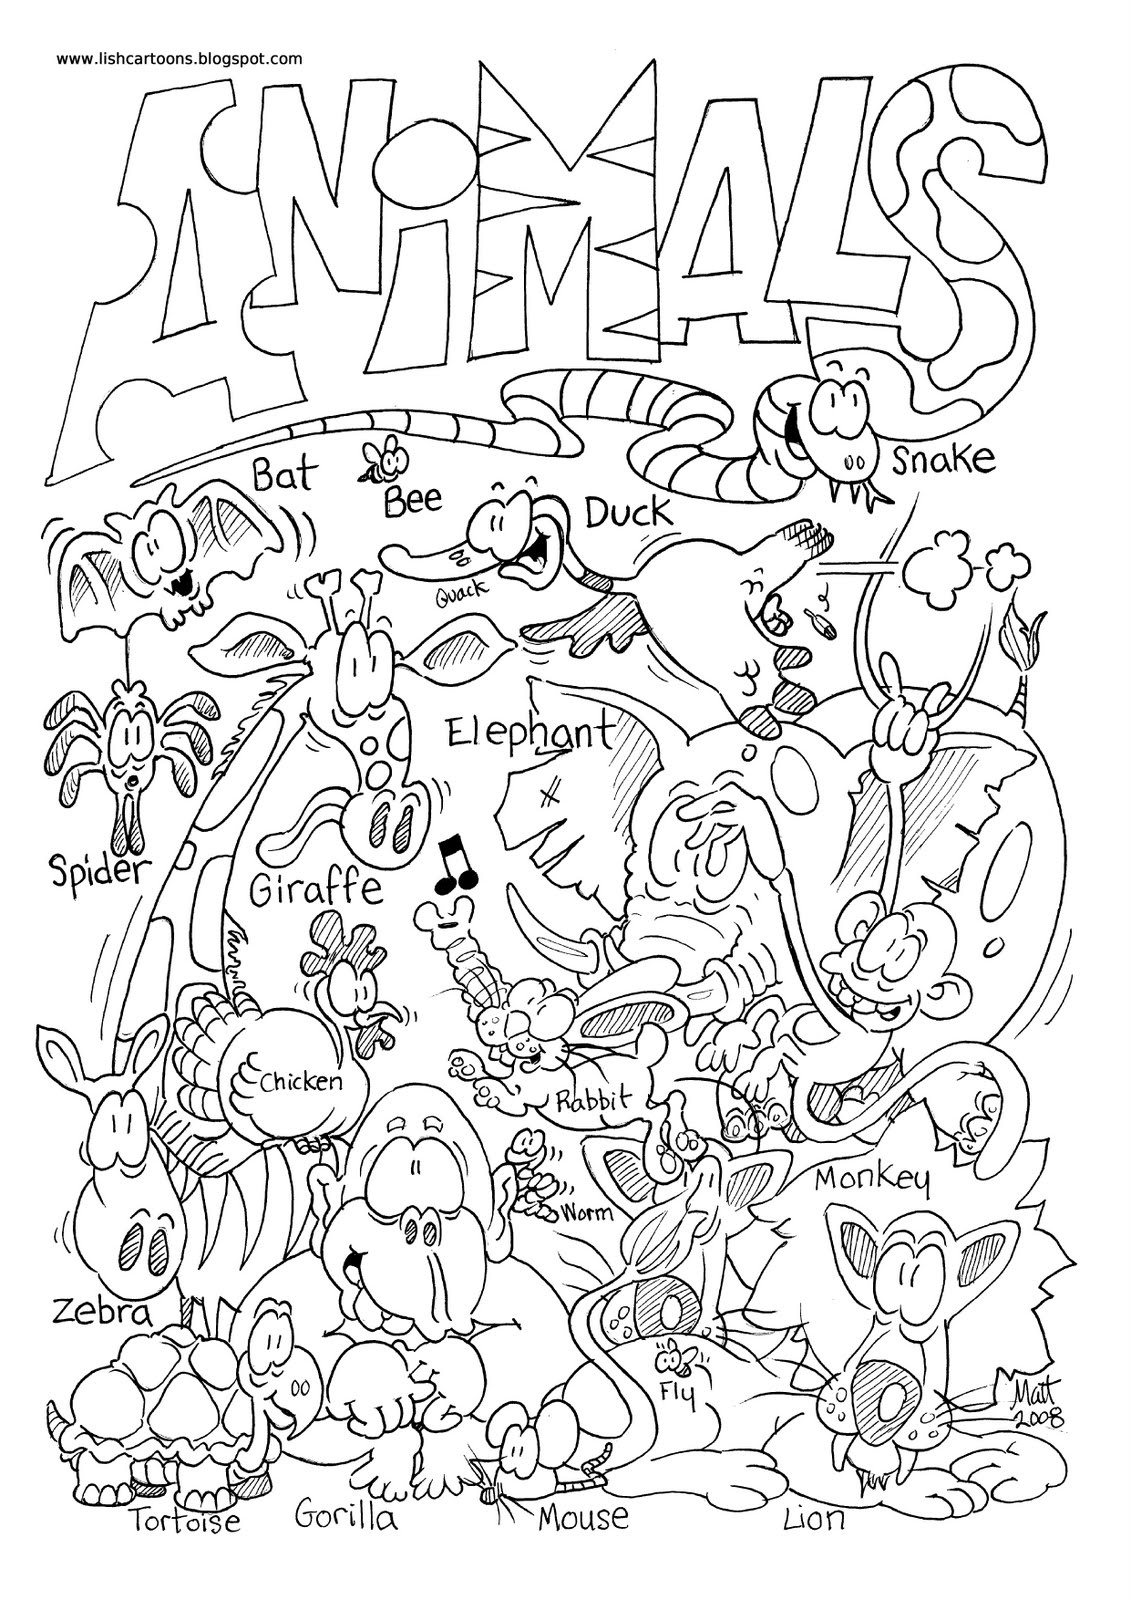 zoo coloring pictures for preschool zoo animal coloring pages for preschool at getcolorings preschool zoo coloring for pictures